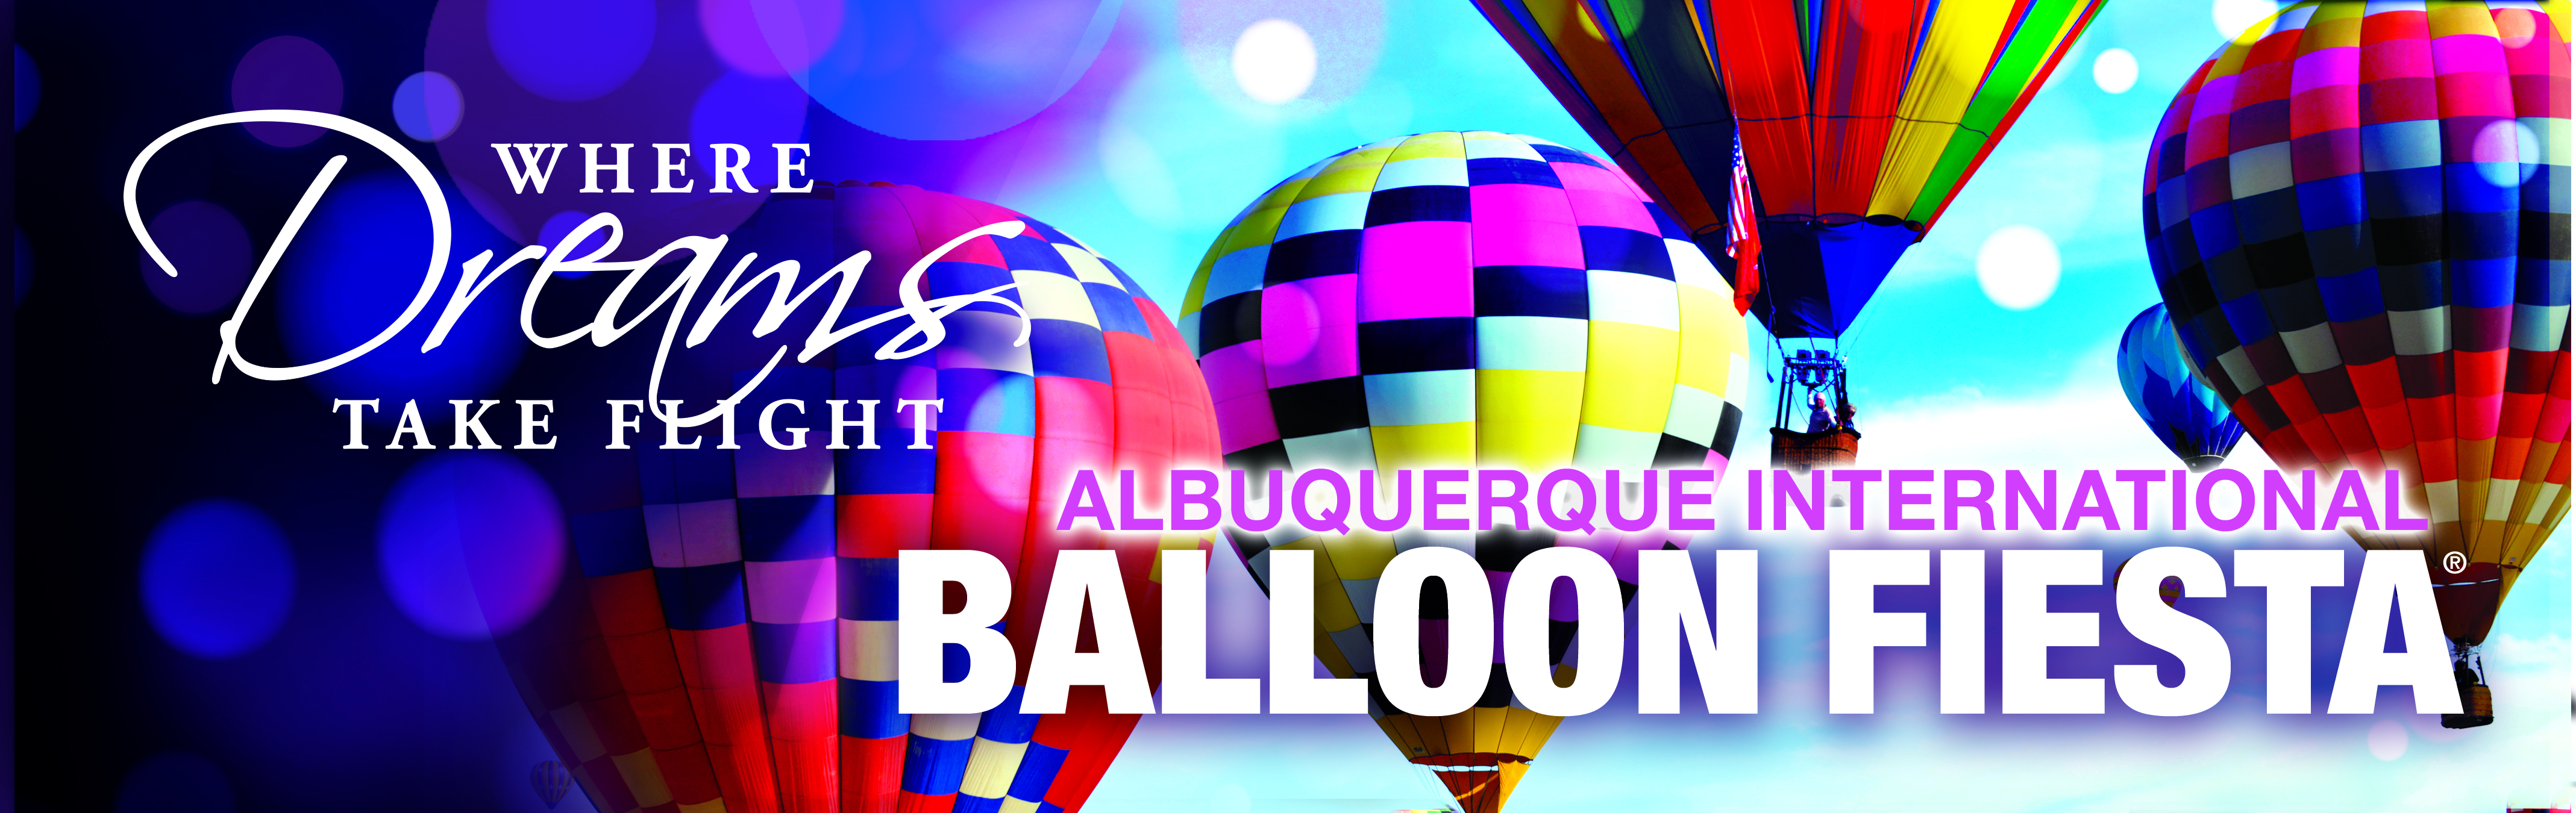 Where Dreams Take Flight - Albuquerque International Balloon Fiesta - AIBF